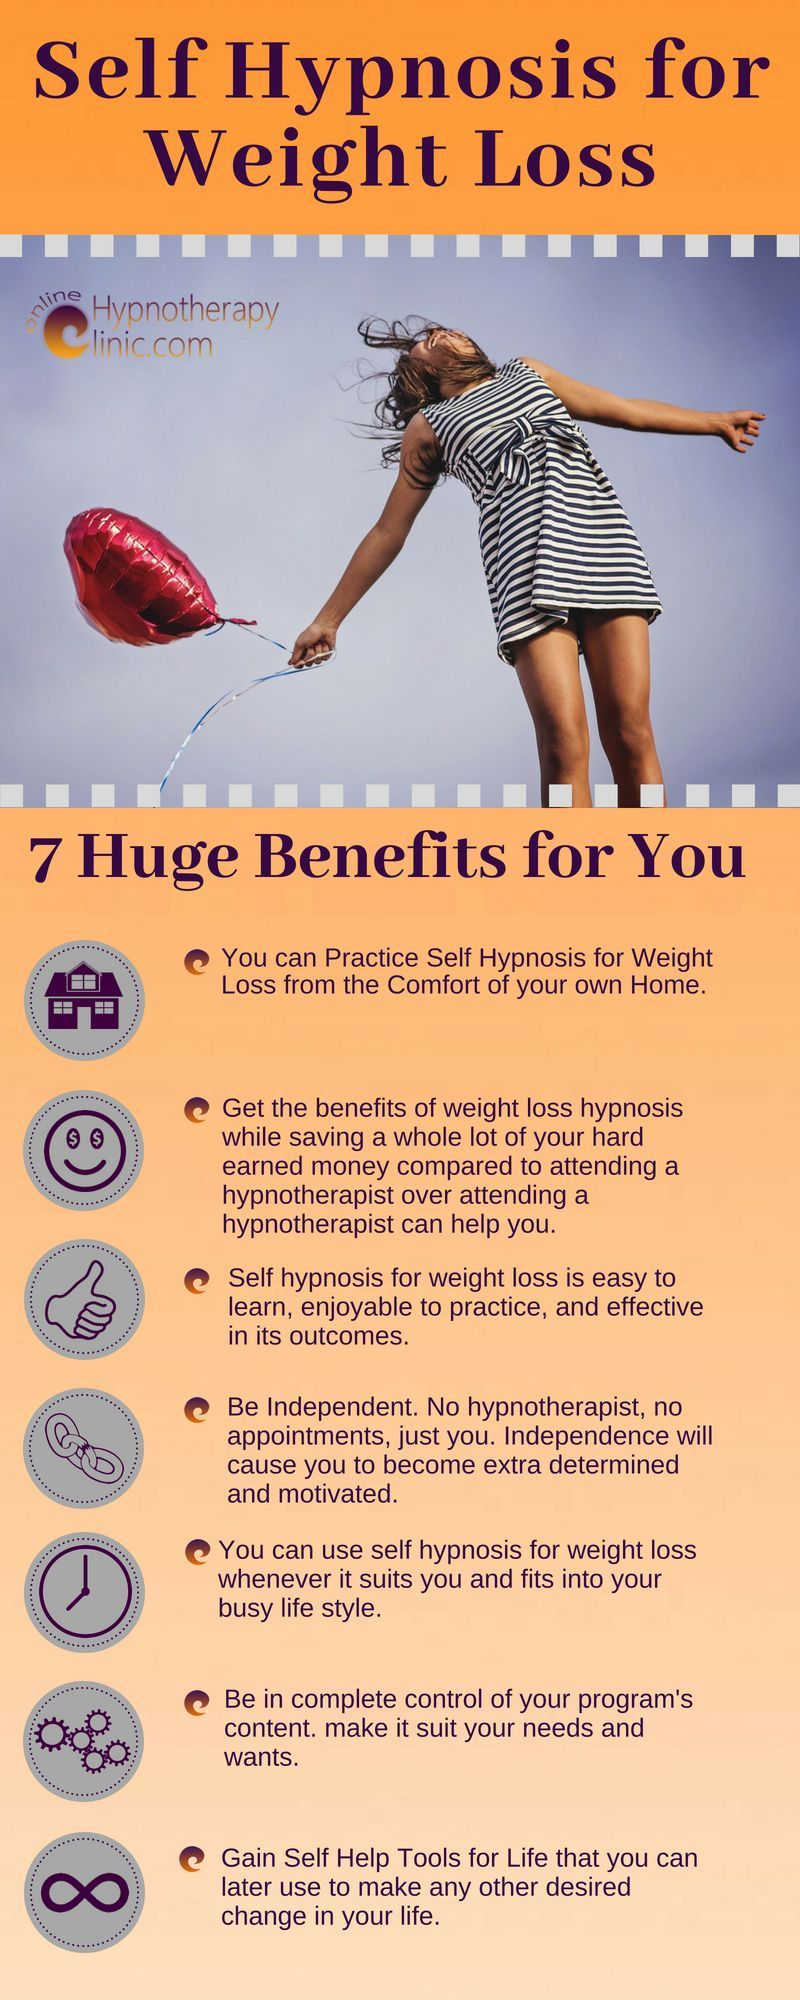 Self Hypnosis for Weight Loss- 7 Huge Benefits for You